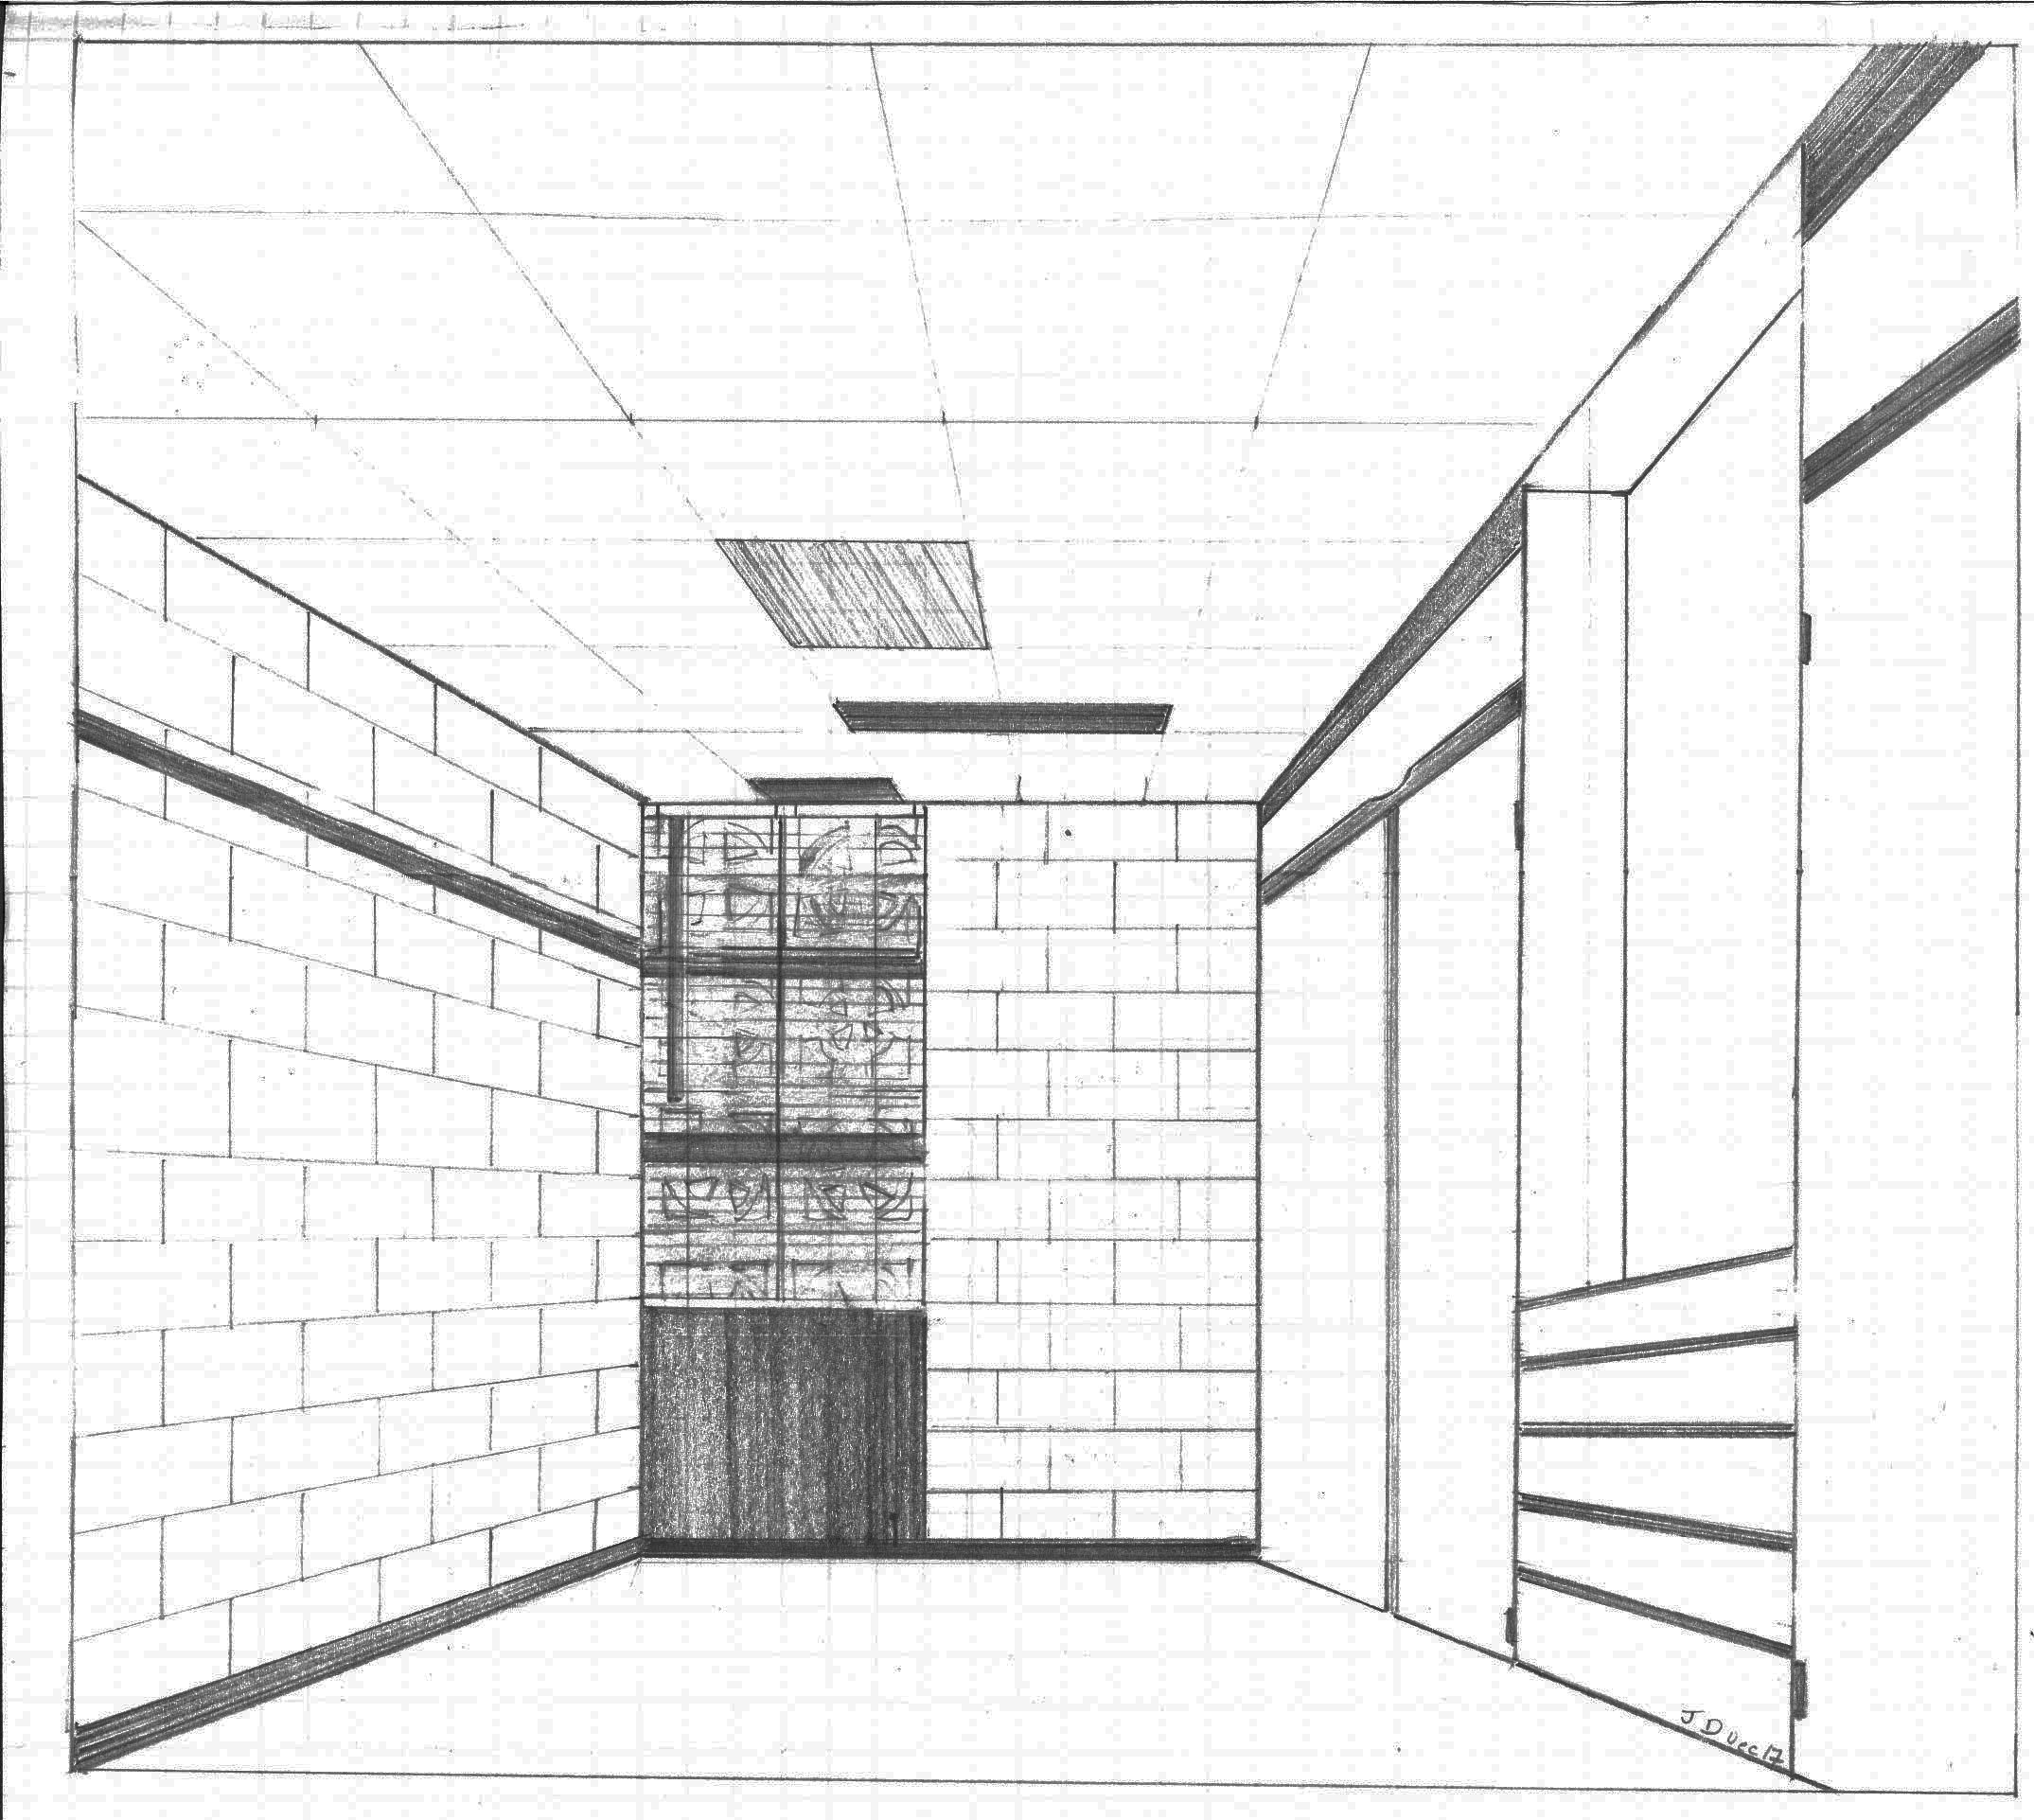 Diagram of an Empty Dormroom